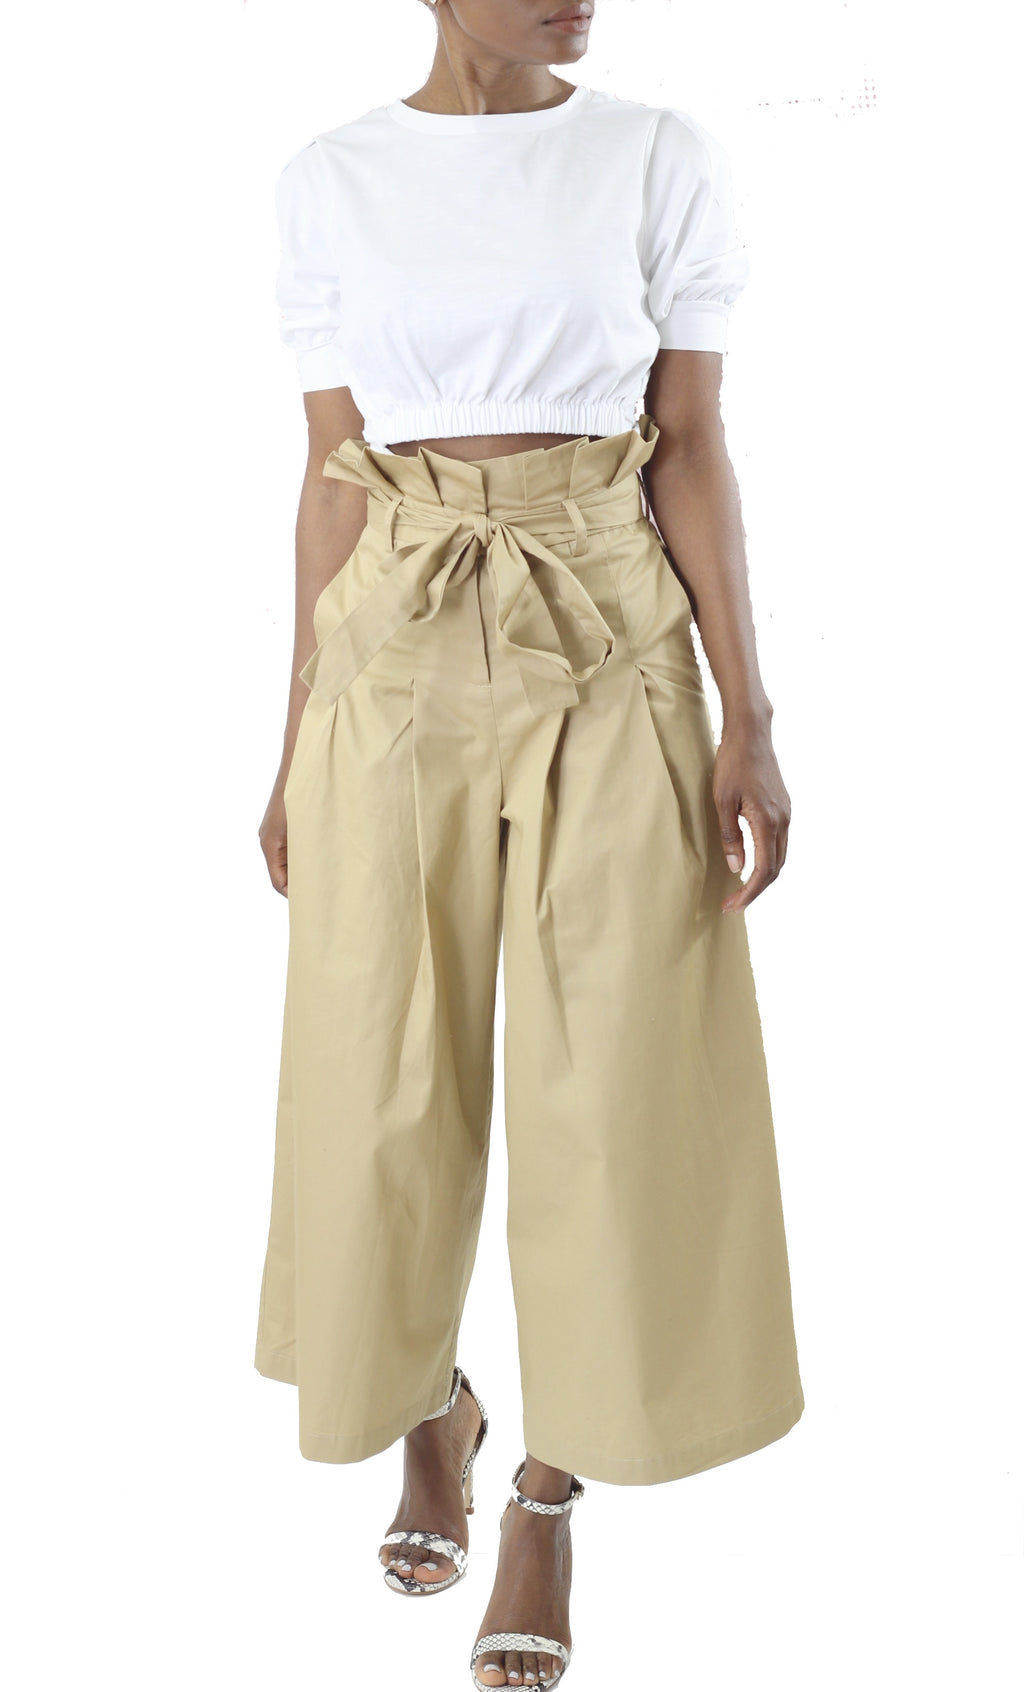 High Waist Paper Bag Pant - Cultur'd Collective